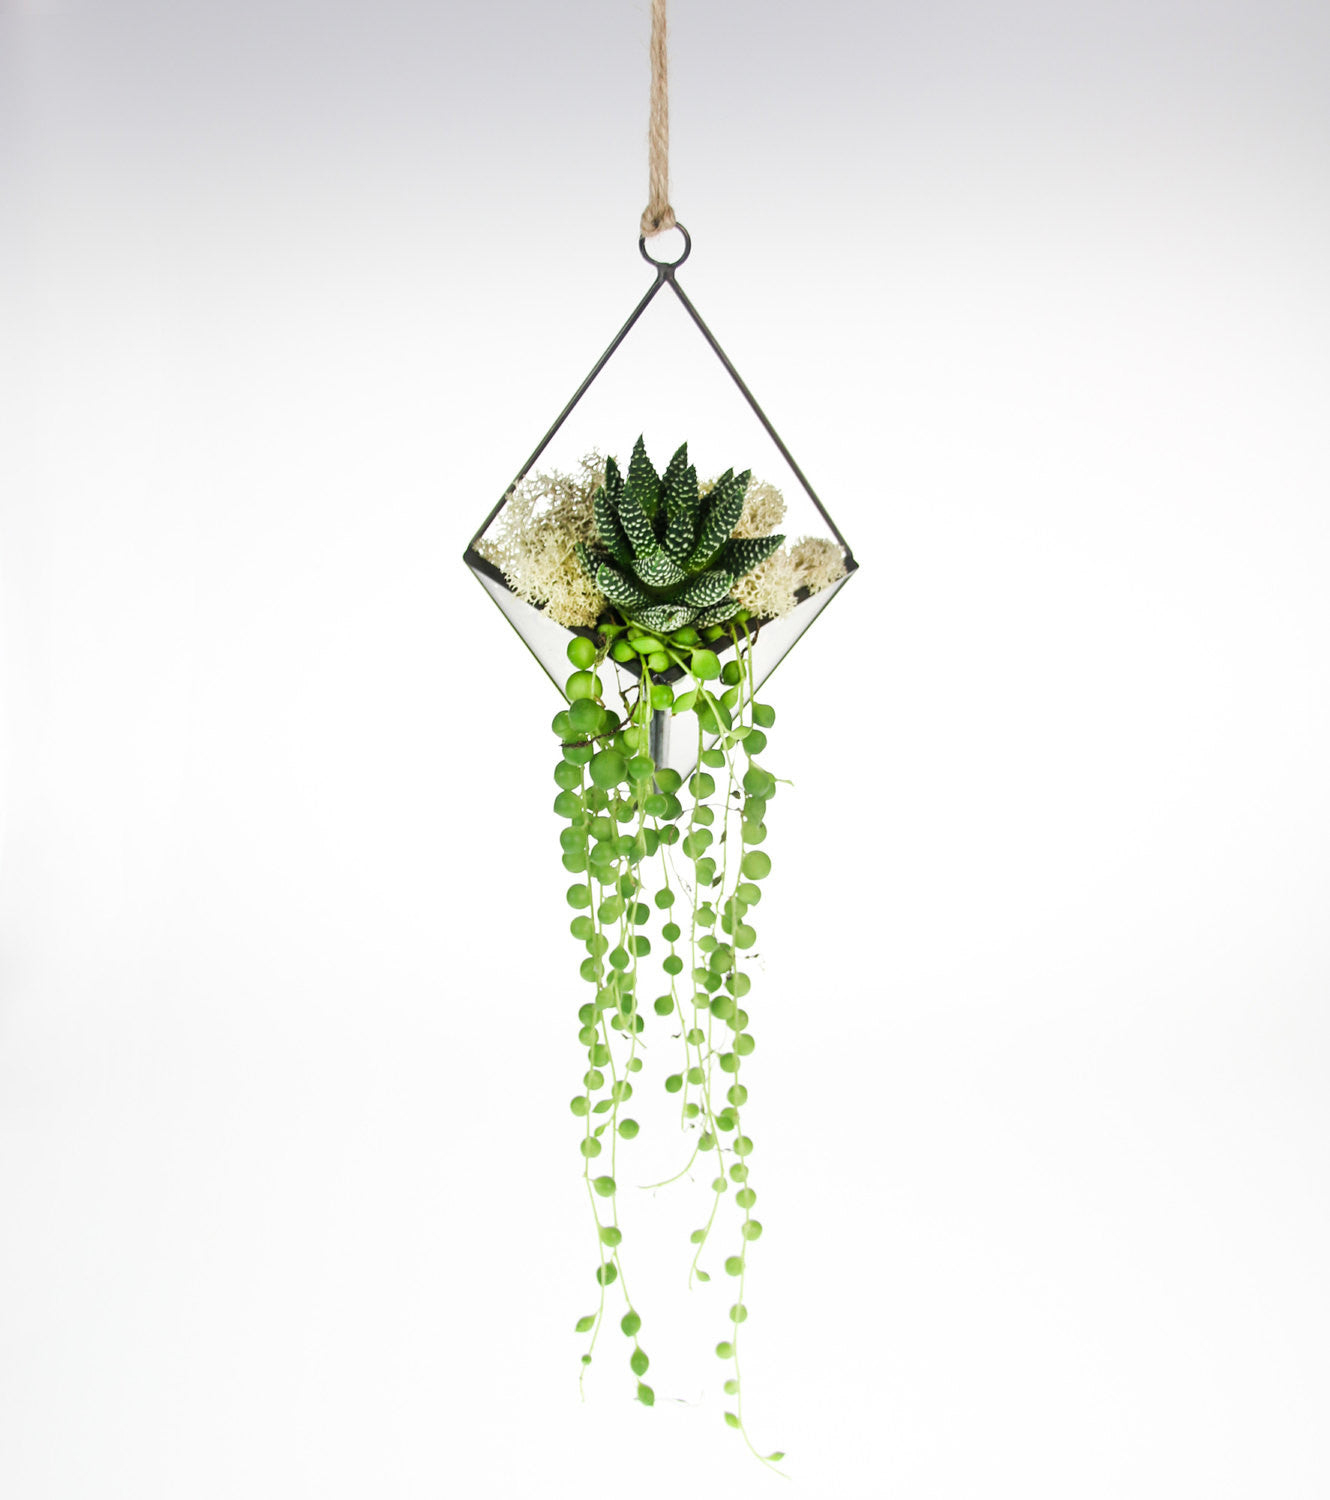 Wall Hanging Geometric Terrarium Kit In Copper And Glass With String Of Pearls Succulent The Art Of Succulents